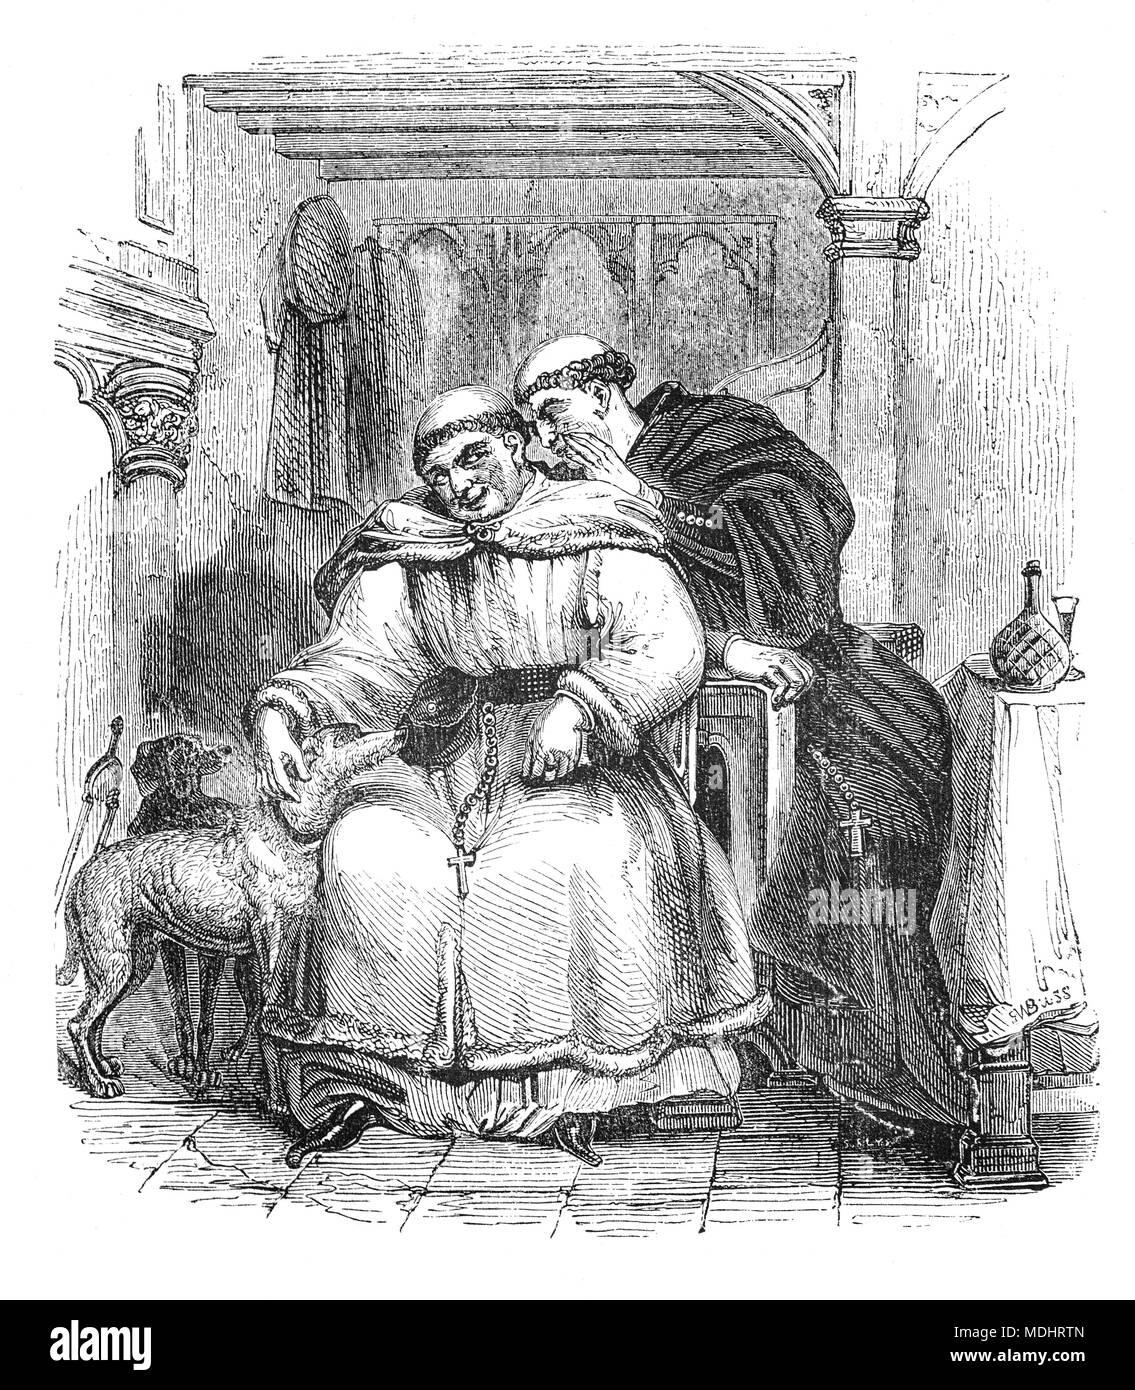 Two Of The Characters From The Canterbury Tales A